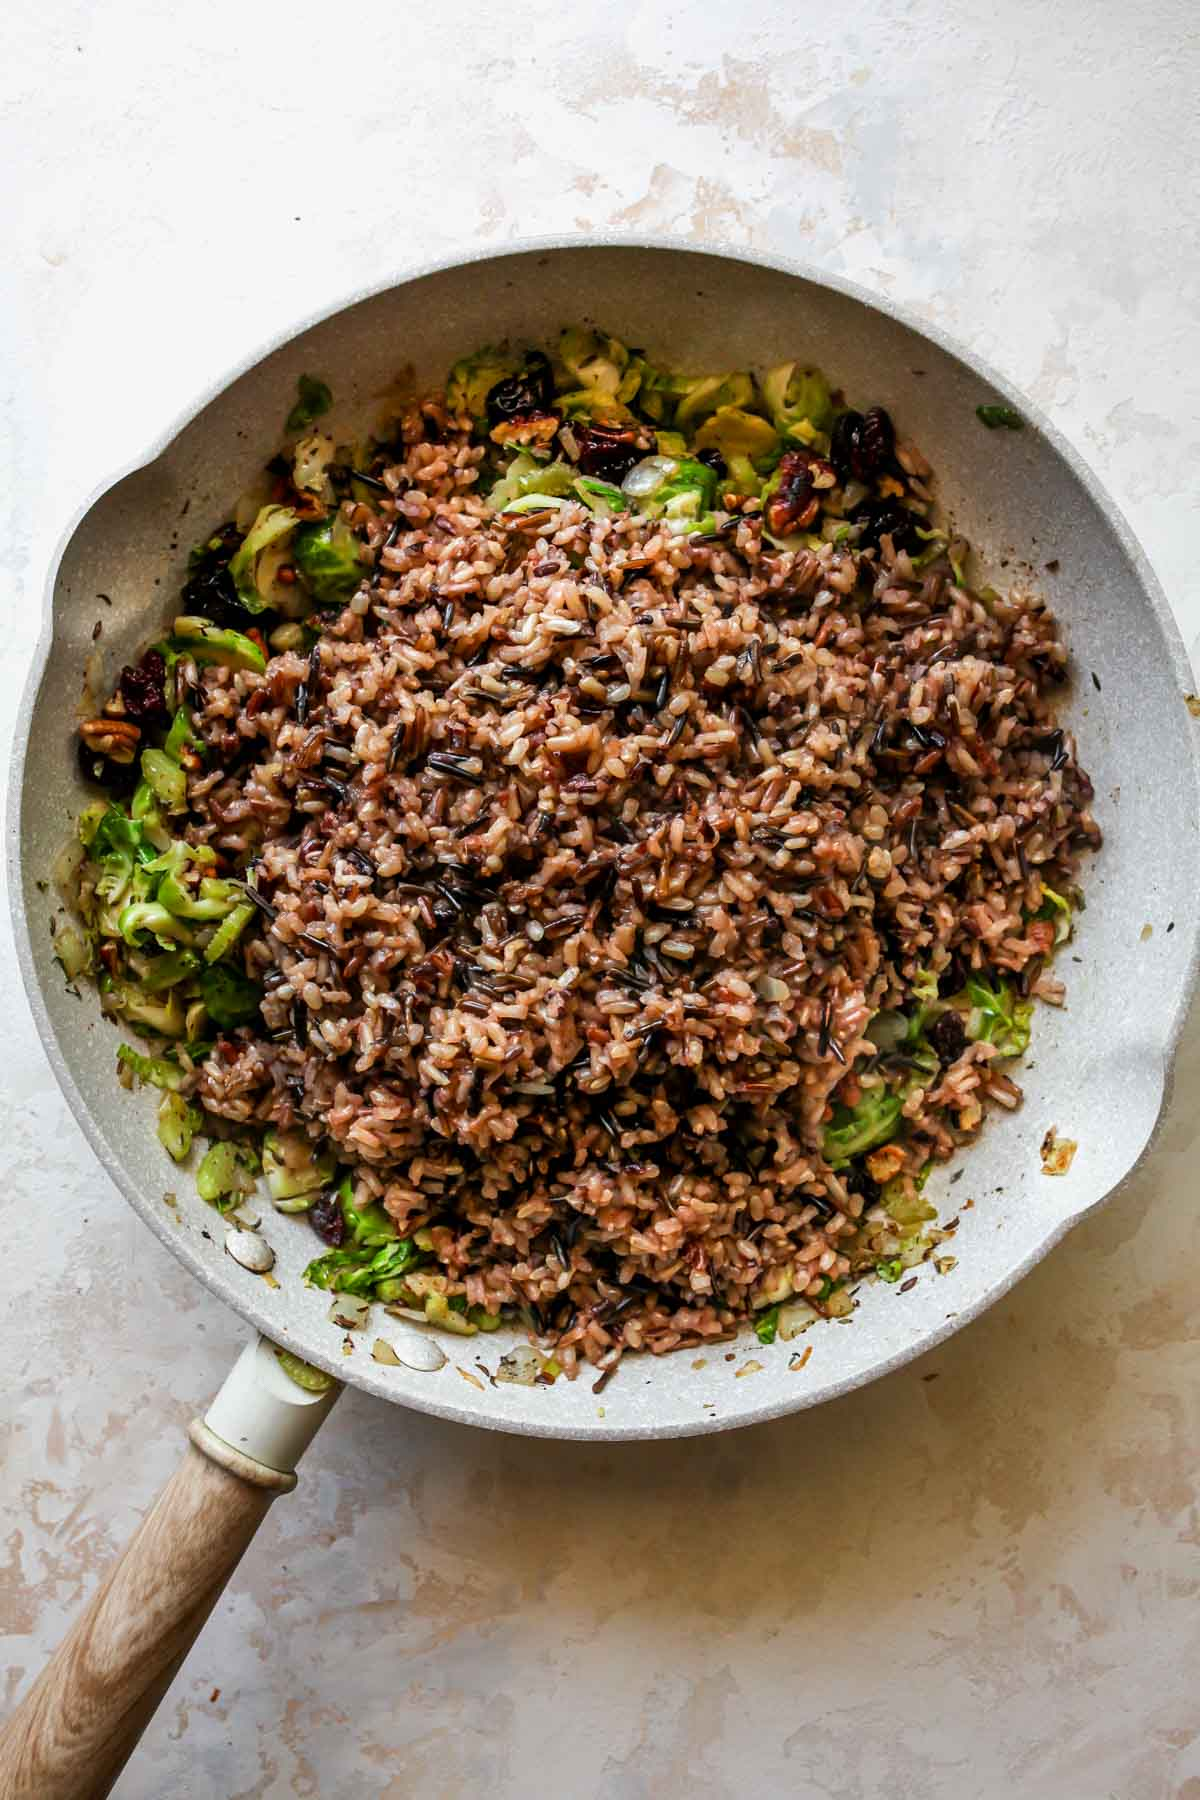 Cooked wild rice being added to a skillet of veggies